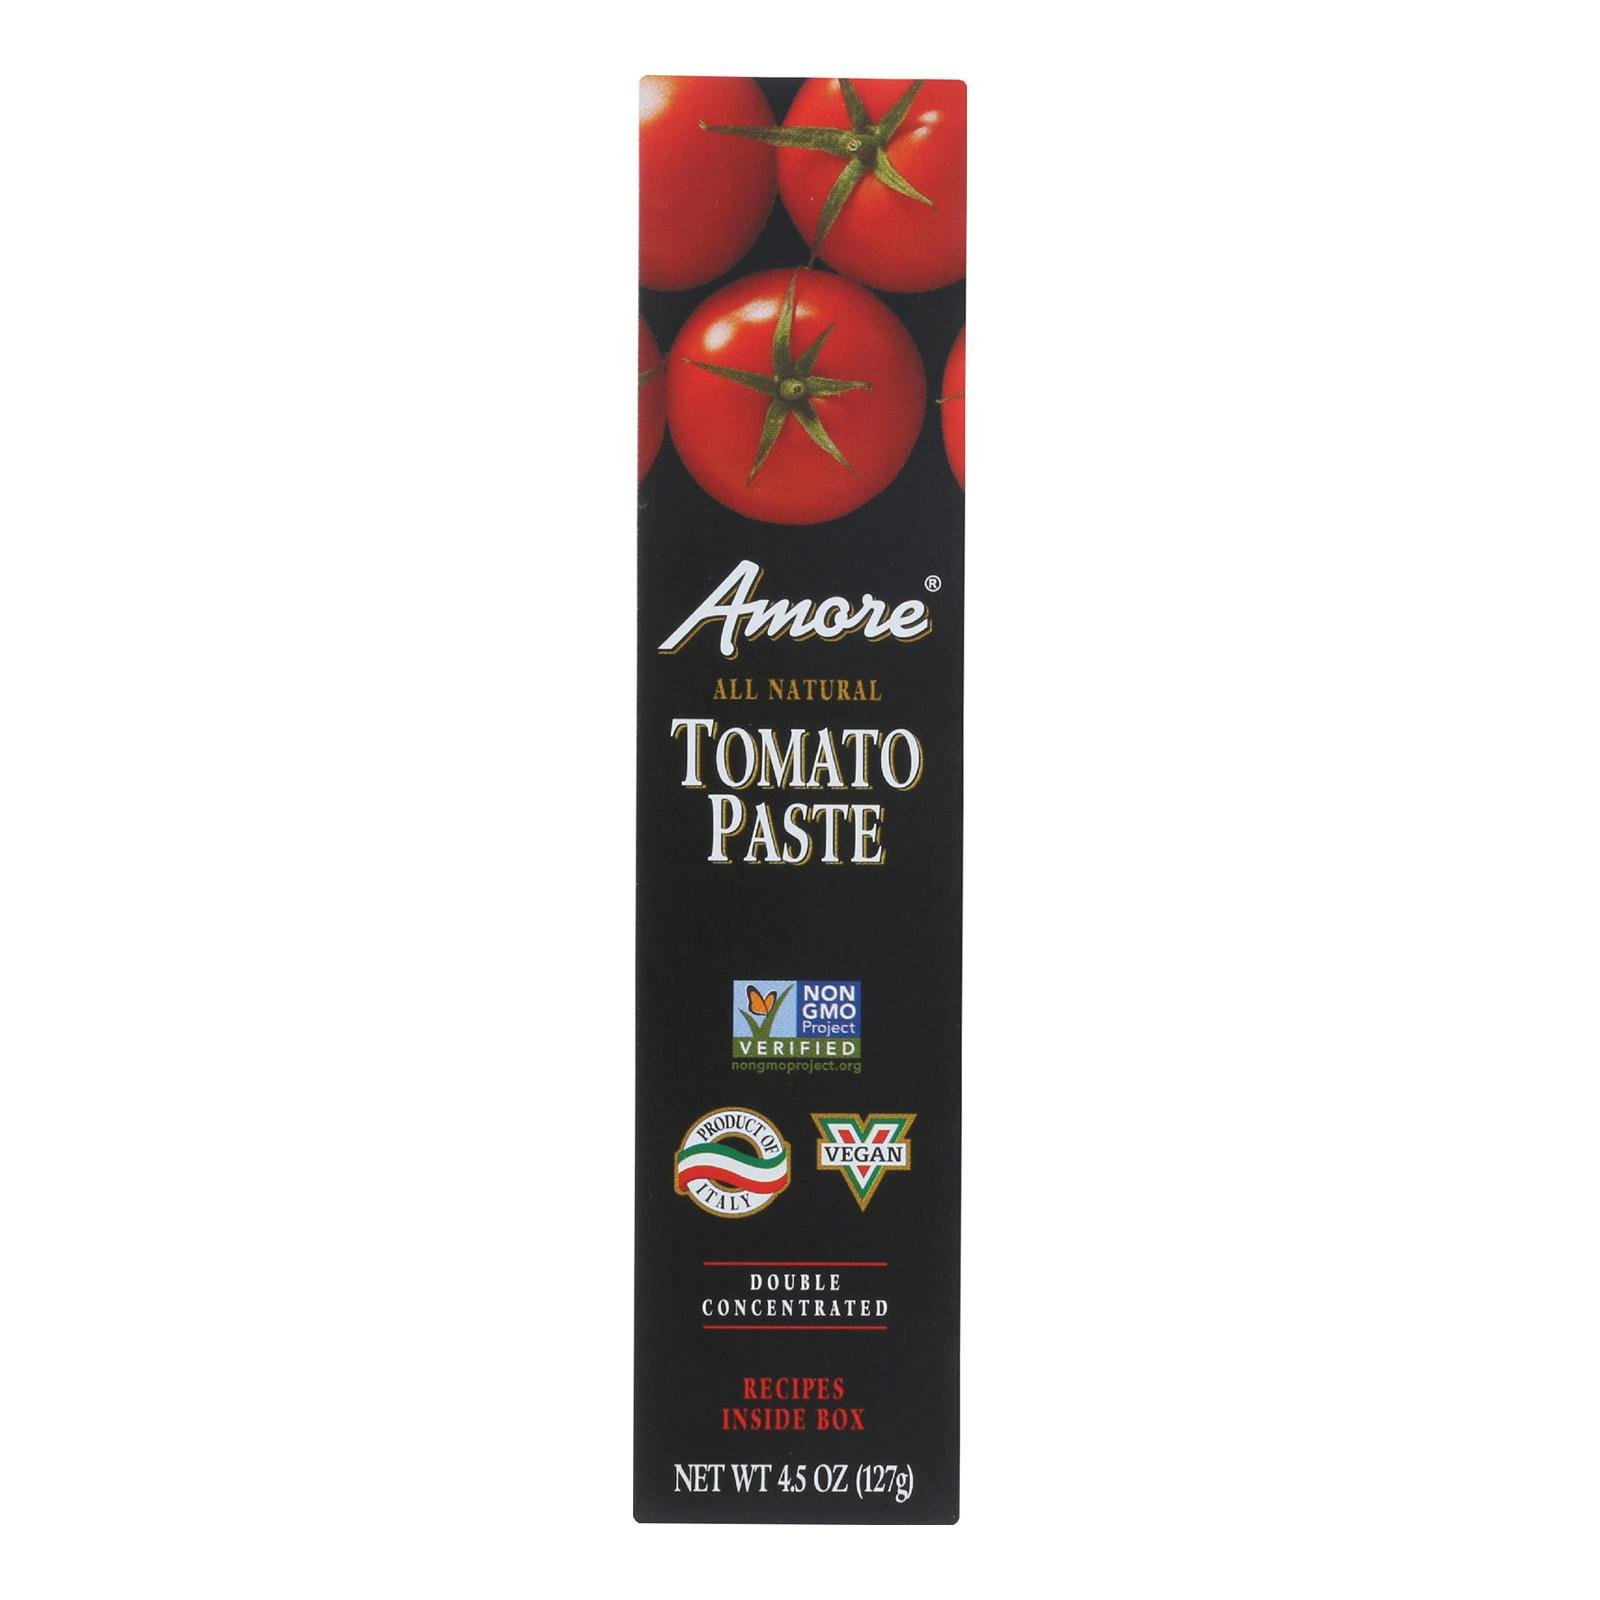 AMORE, Amore Tomato Paste - Tube - 4.5 oz - case of 12 - Pack of 12